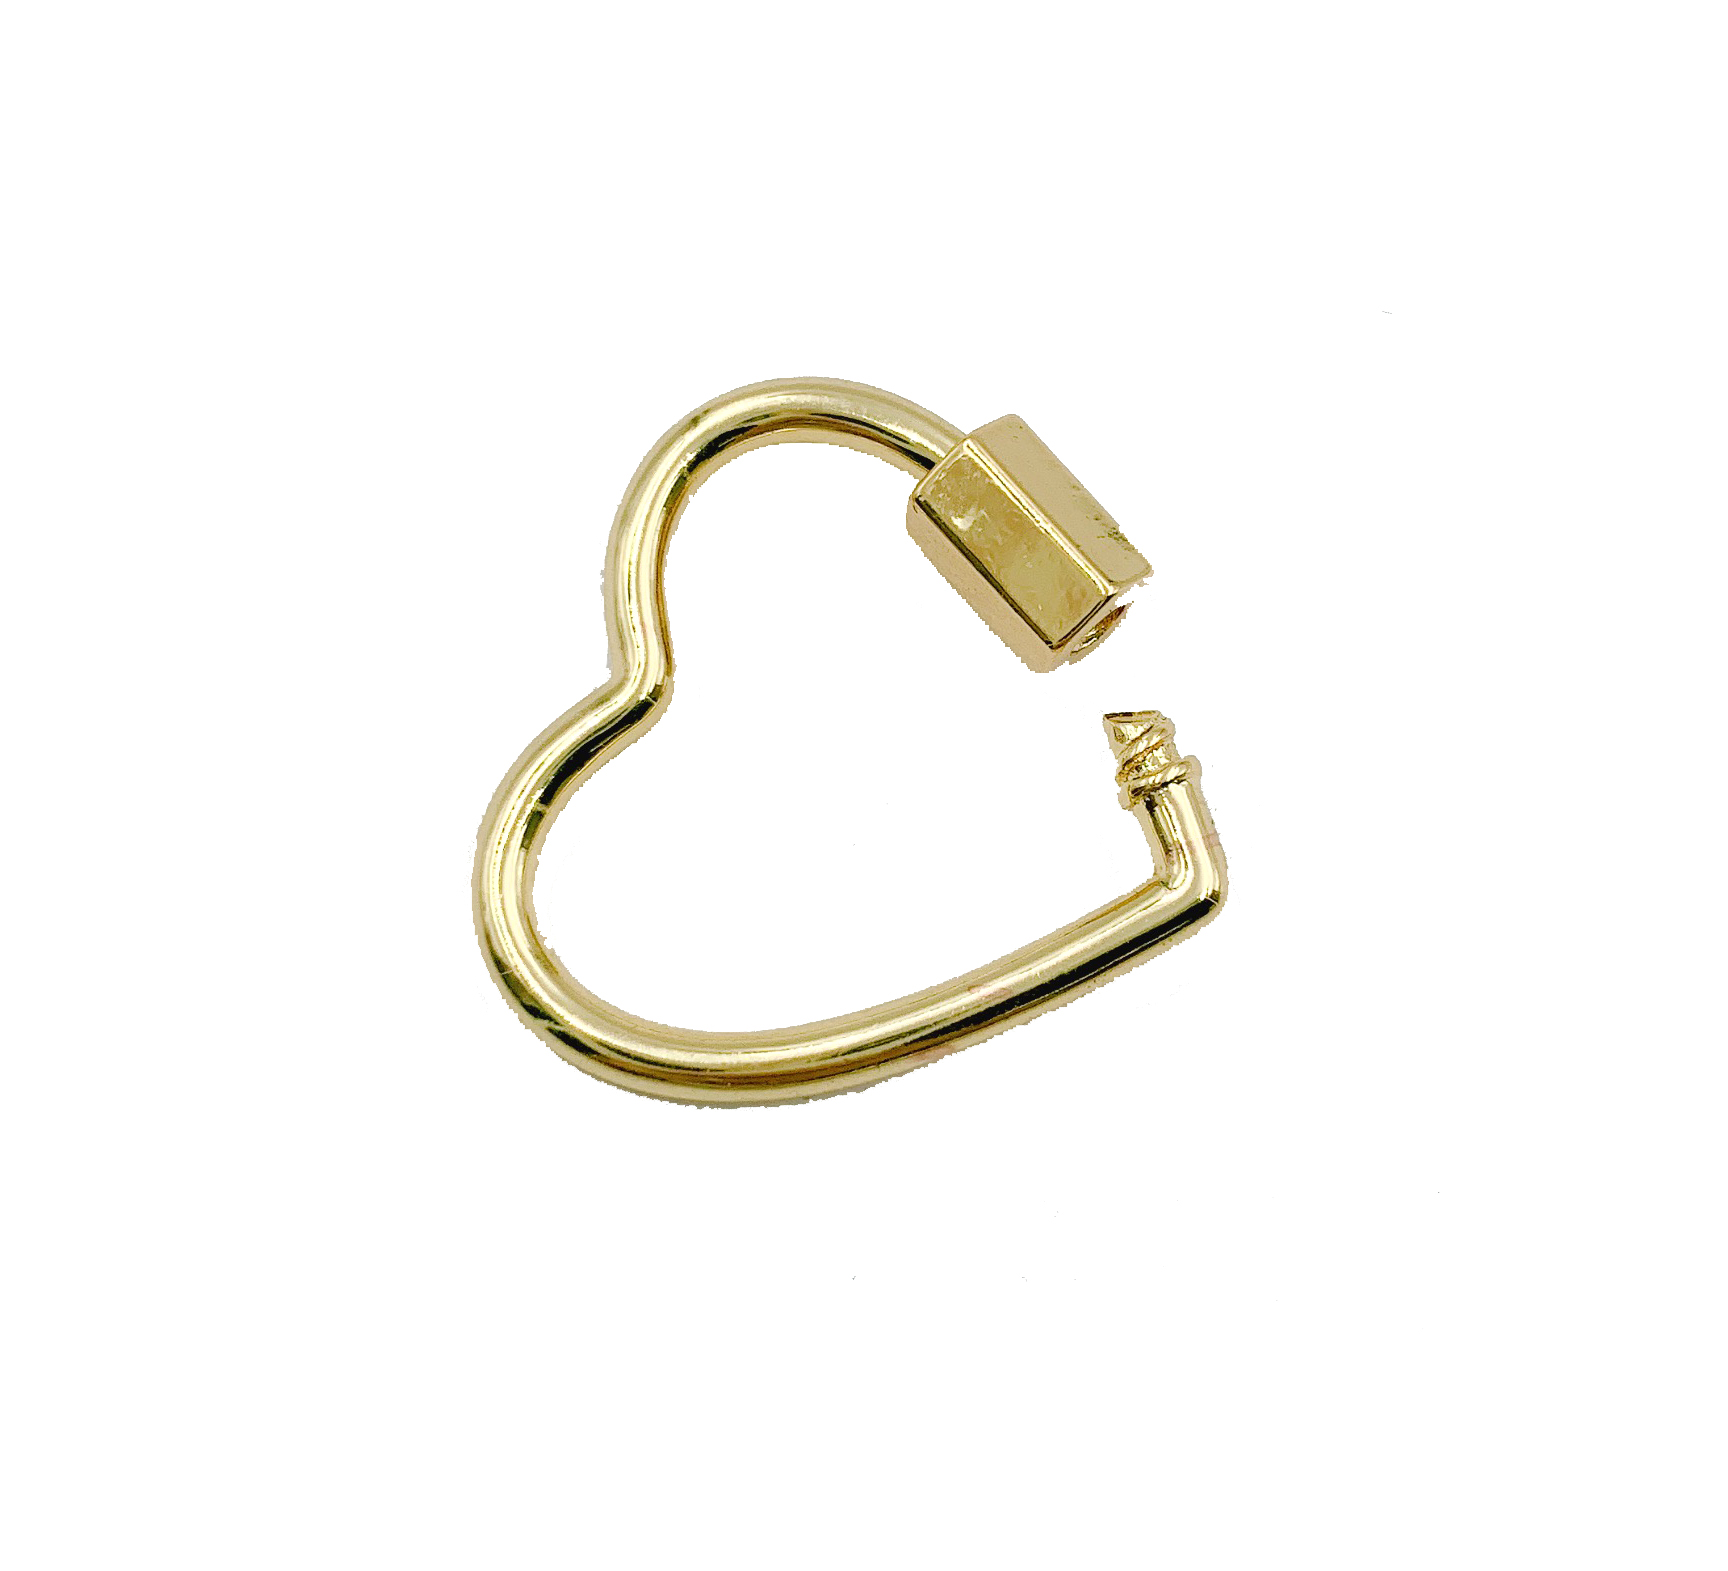 and Black Color Options Rose Gold Circle Screw Clasp with Rhinestones 1 pc 23x23mm Wholesale Heart Carabiner 24K Gold-Plated